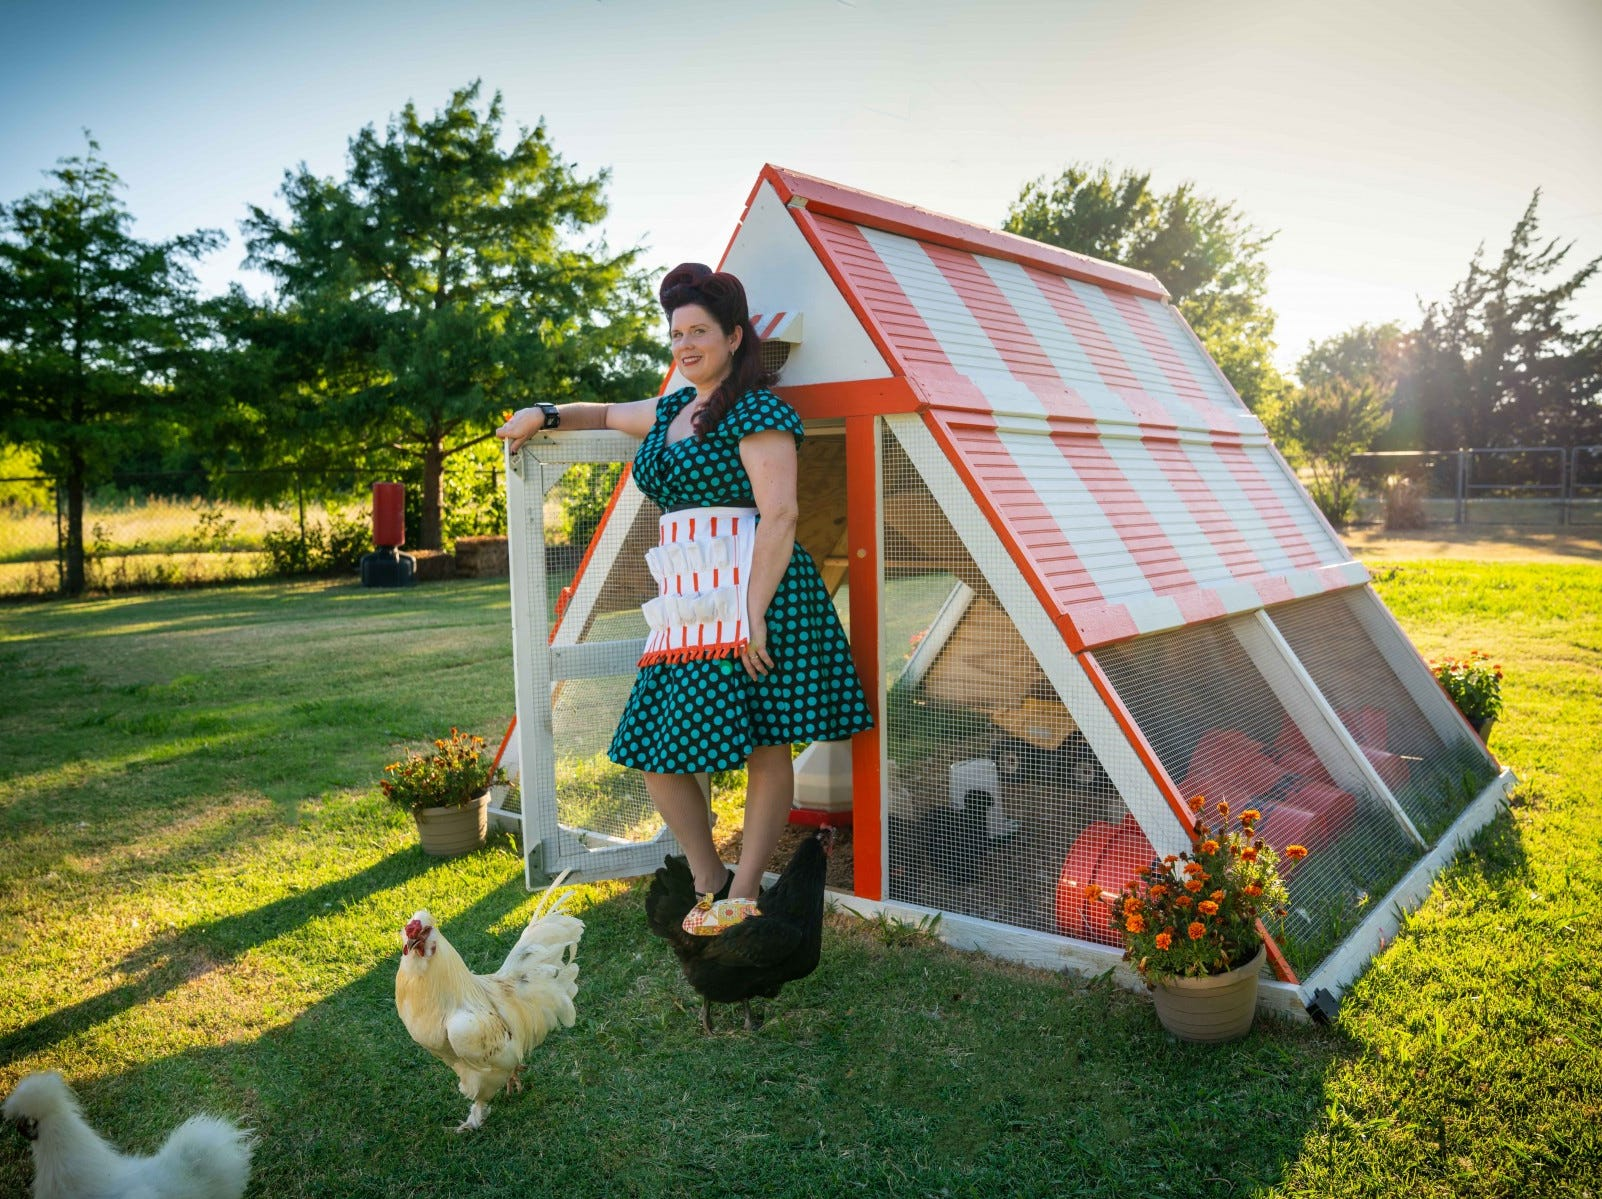 Fort Worth resident Trisha Ruiz made a Whataburger-themed chicken coop in her backyard for her chickens. The coop came into fruition when Ruiz joked  to her husband that she would never be close to a Whataburger again after she moved to the country.